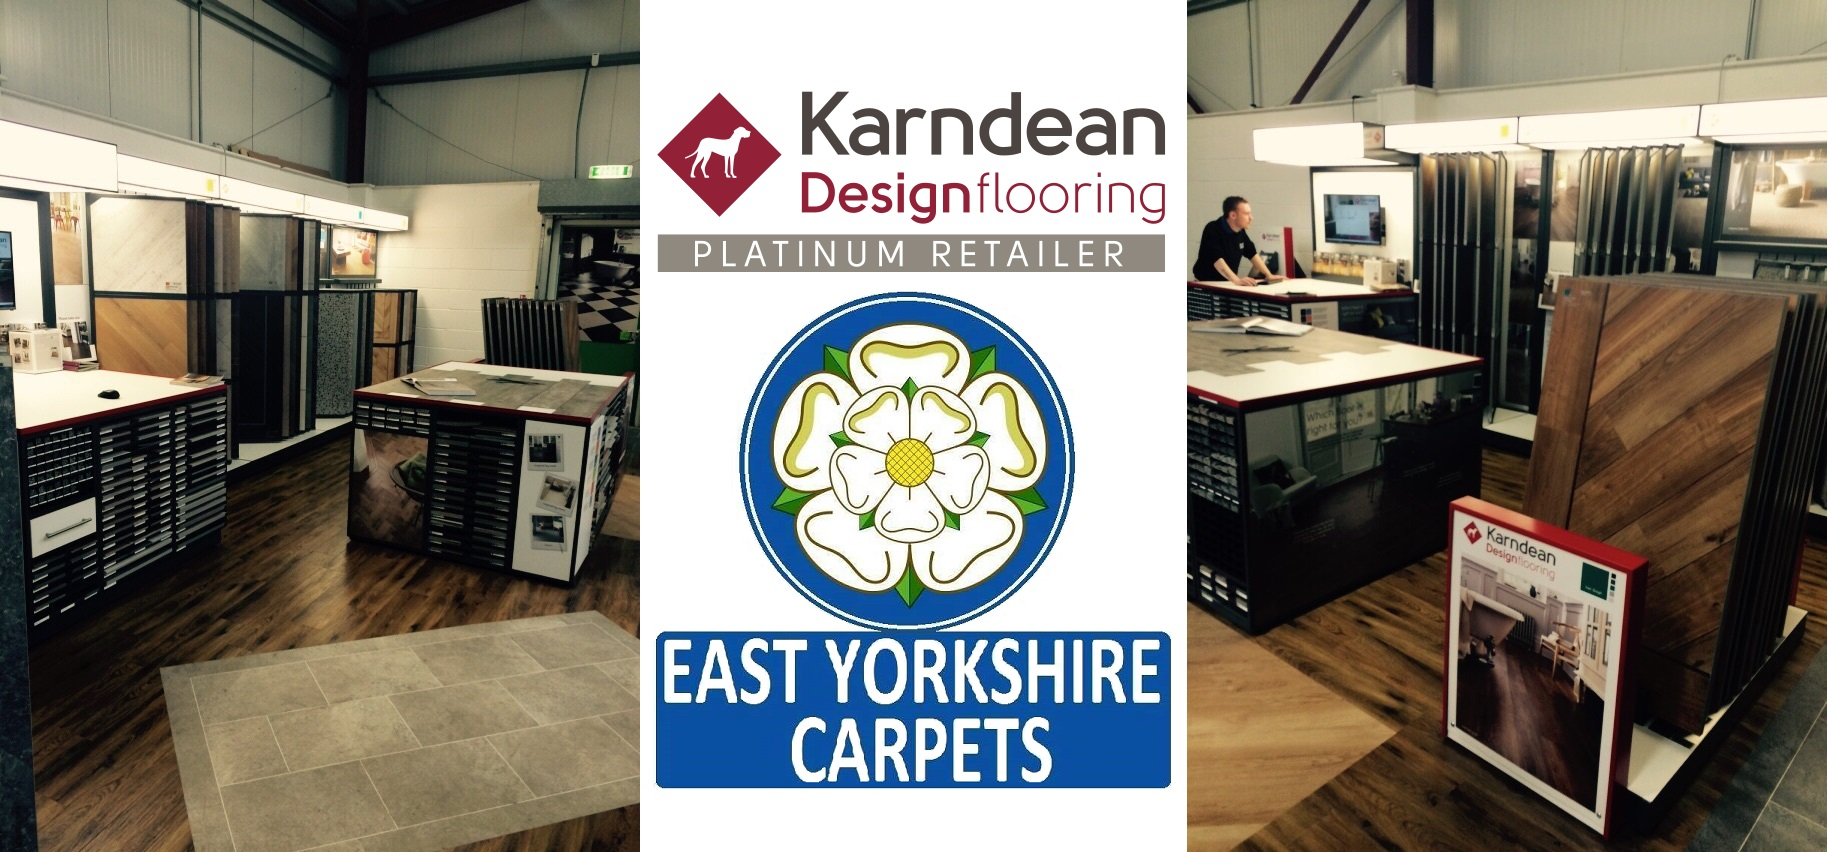 Karndean Luxury Vinyl Tiles